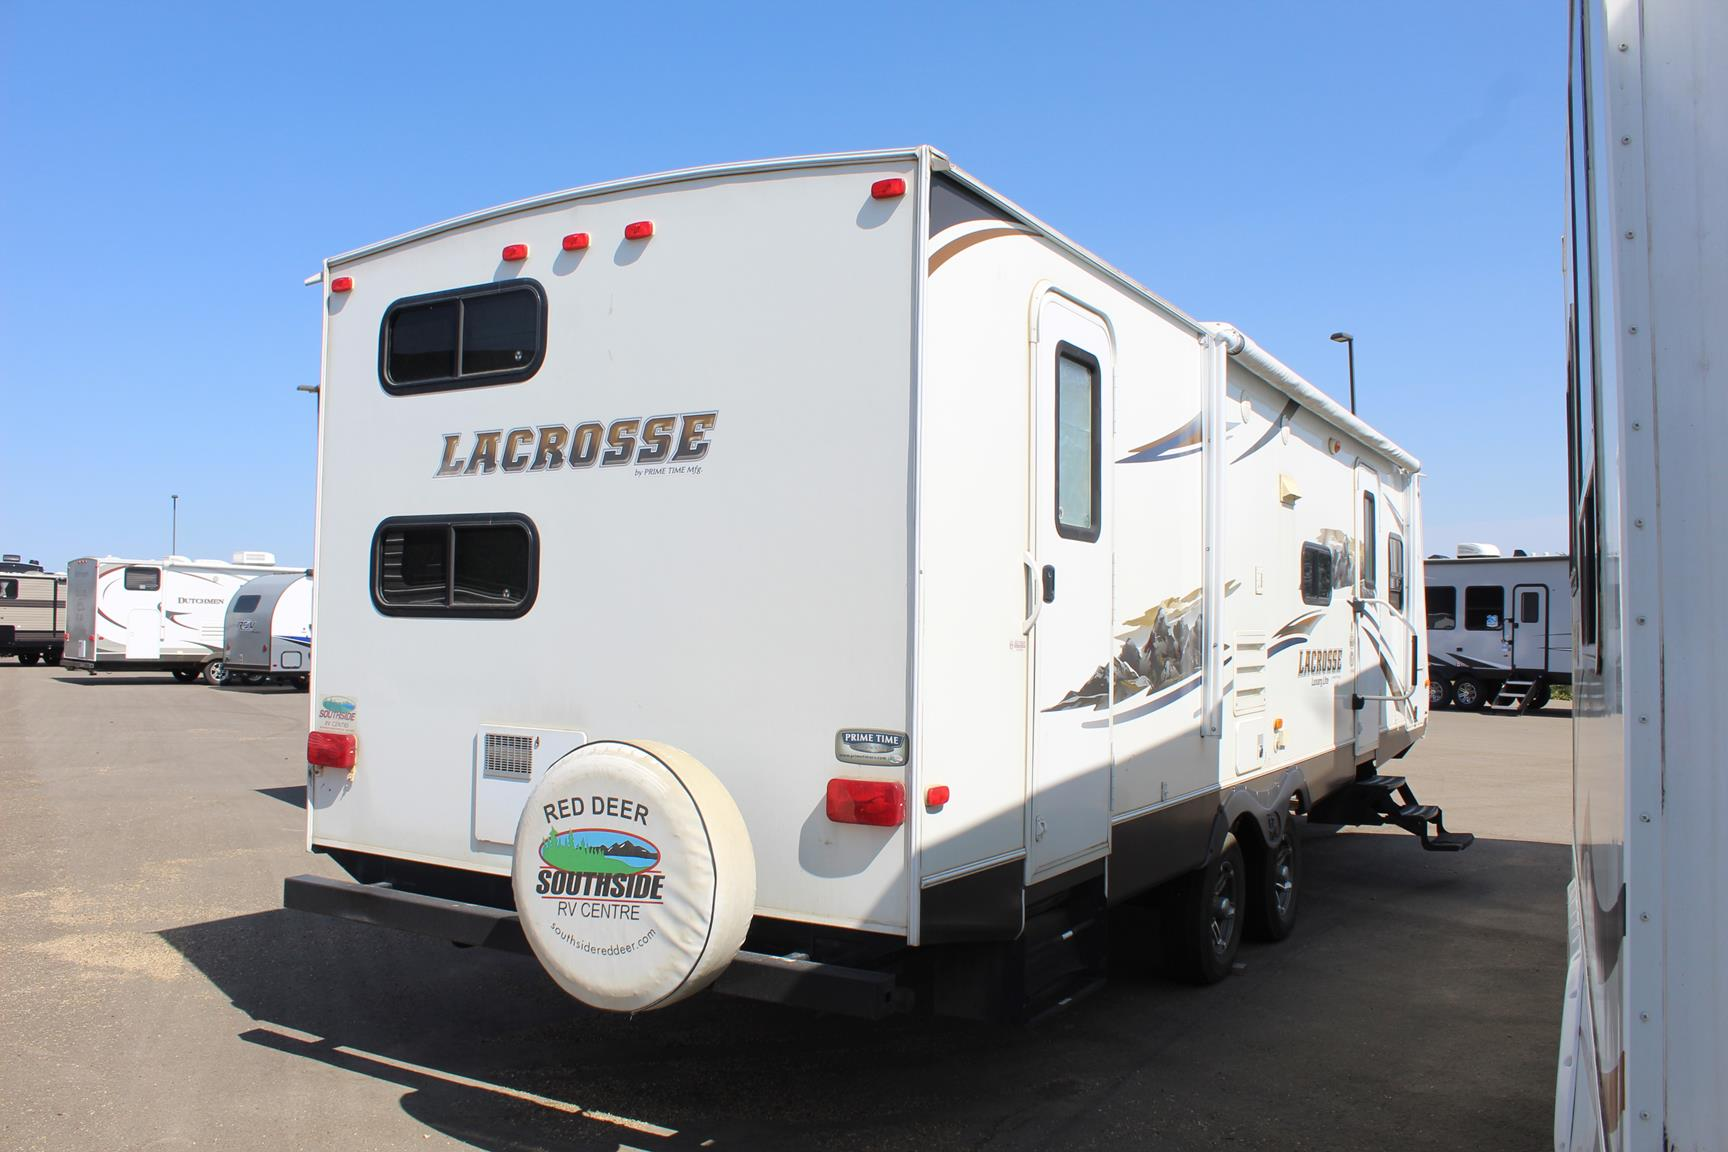 2013 PRIME TIME LACROSSE 292BHS RV12 69133A